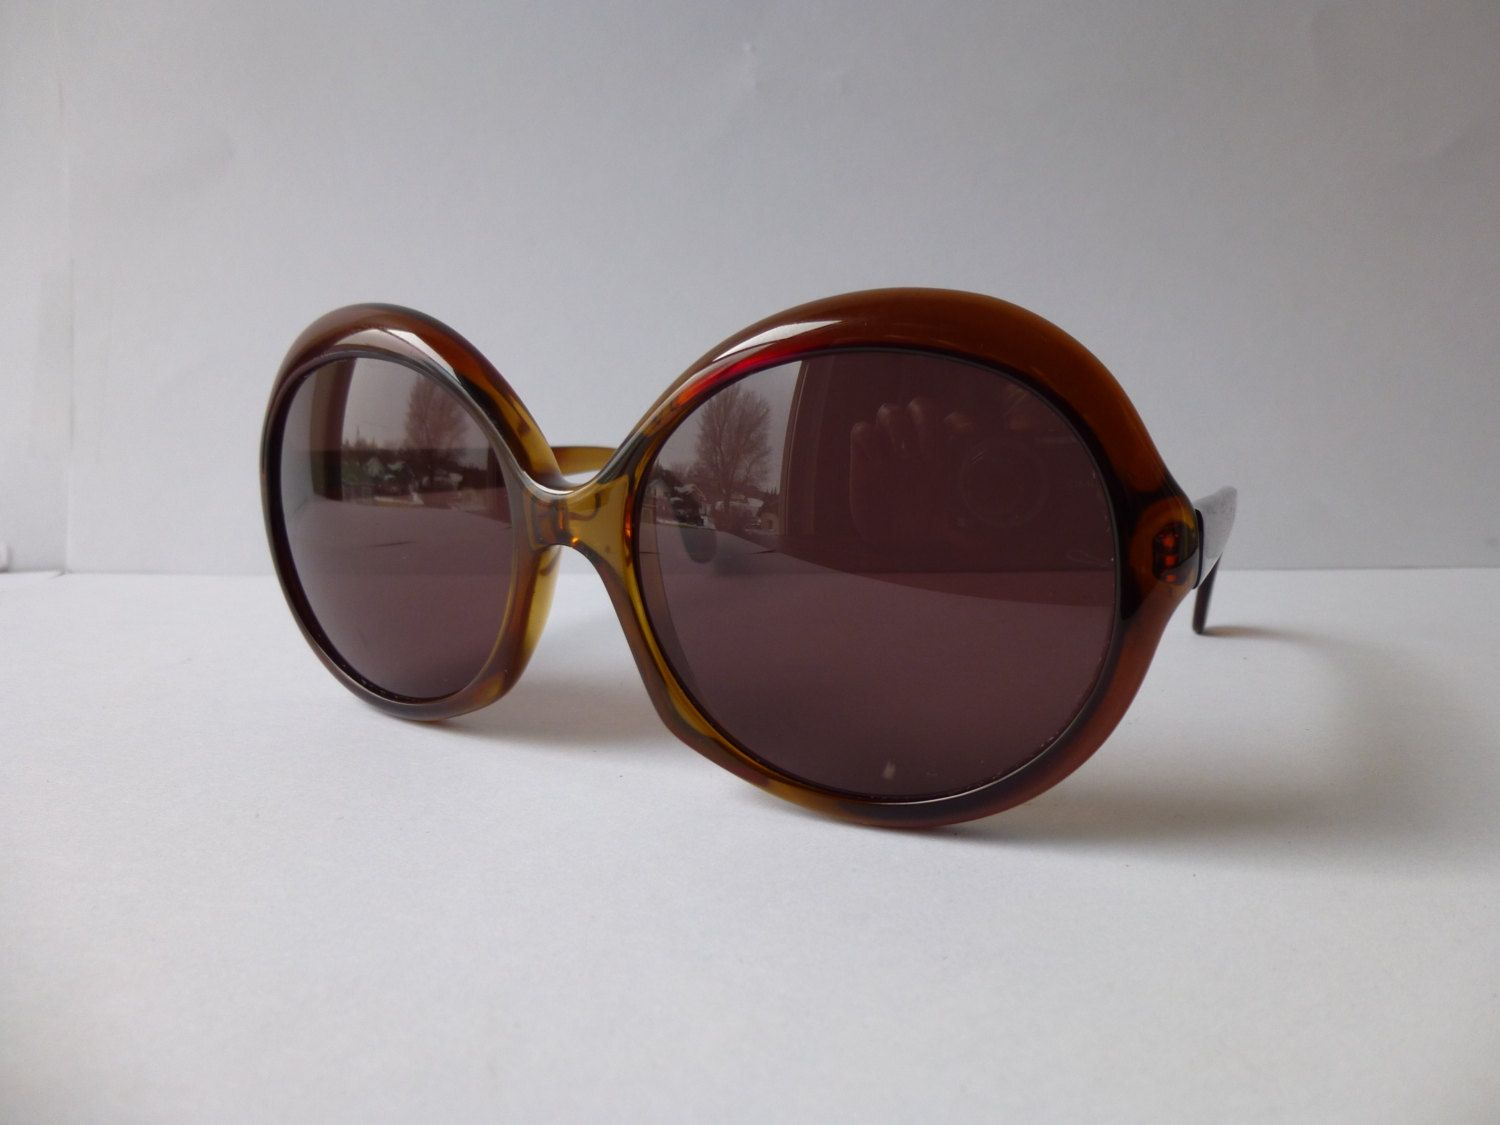 51e80855a4 Vintage 70s German Marwitz 125 Oversized Bug-Eye Chic Sunglasses Caramel  Frame Brown Purple Lenses Elegant Retro Shades Hipster Boho Germany by ...